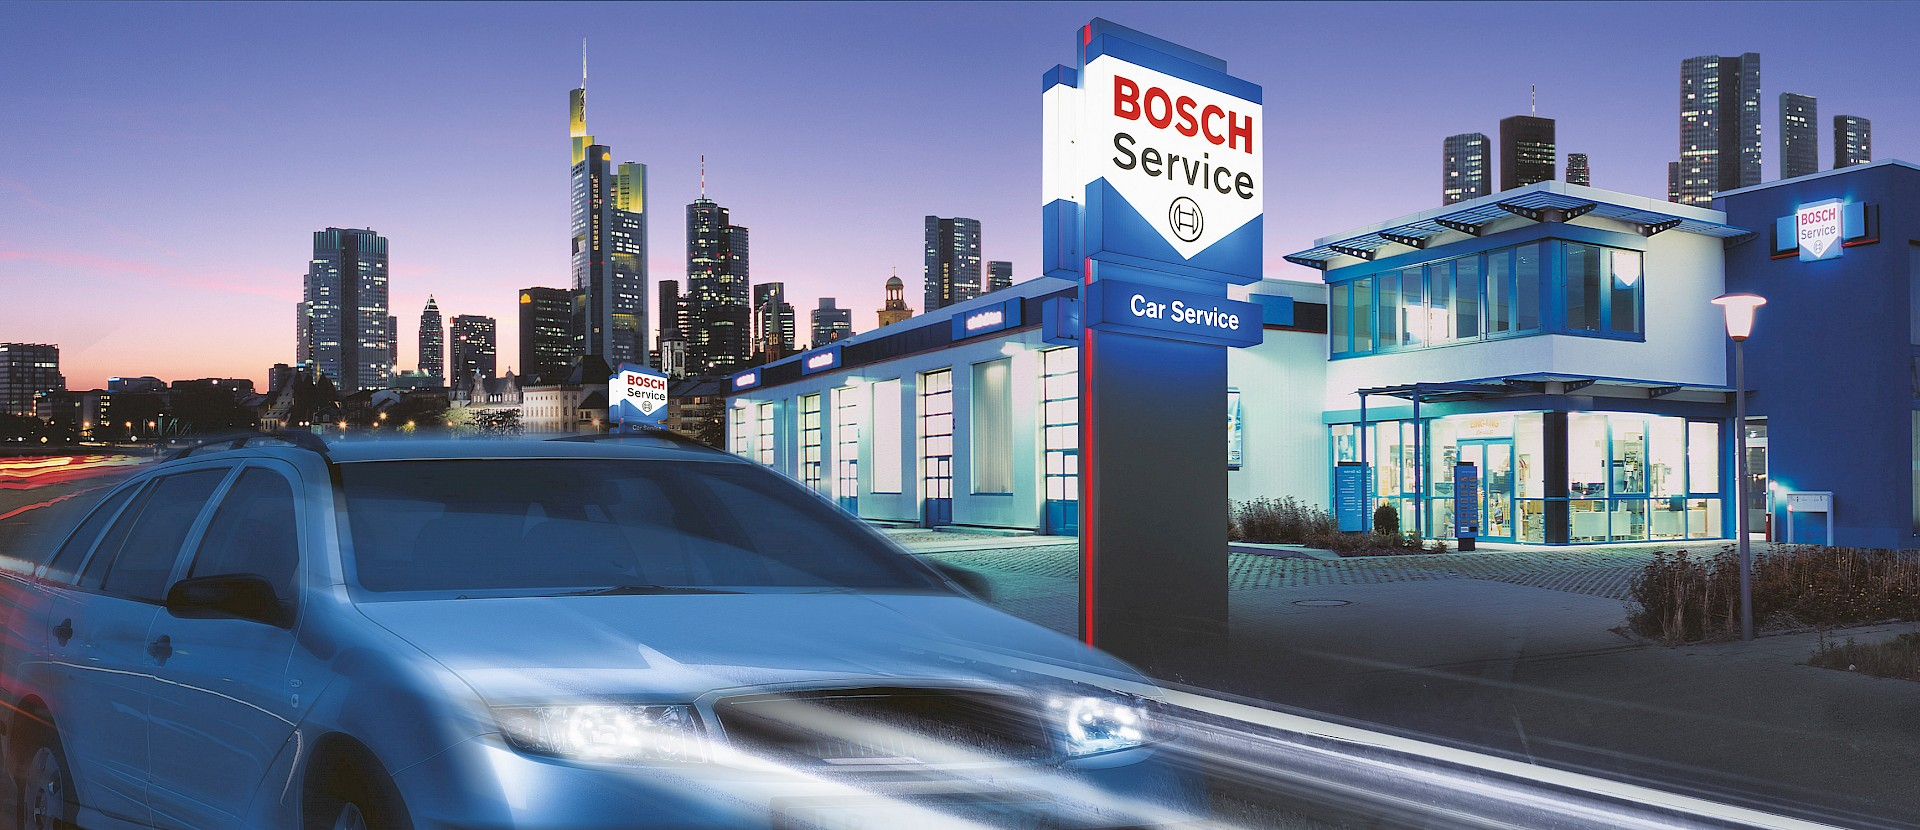 Bosch Car Service Johnson, Impressum